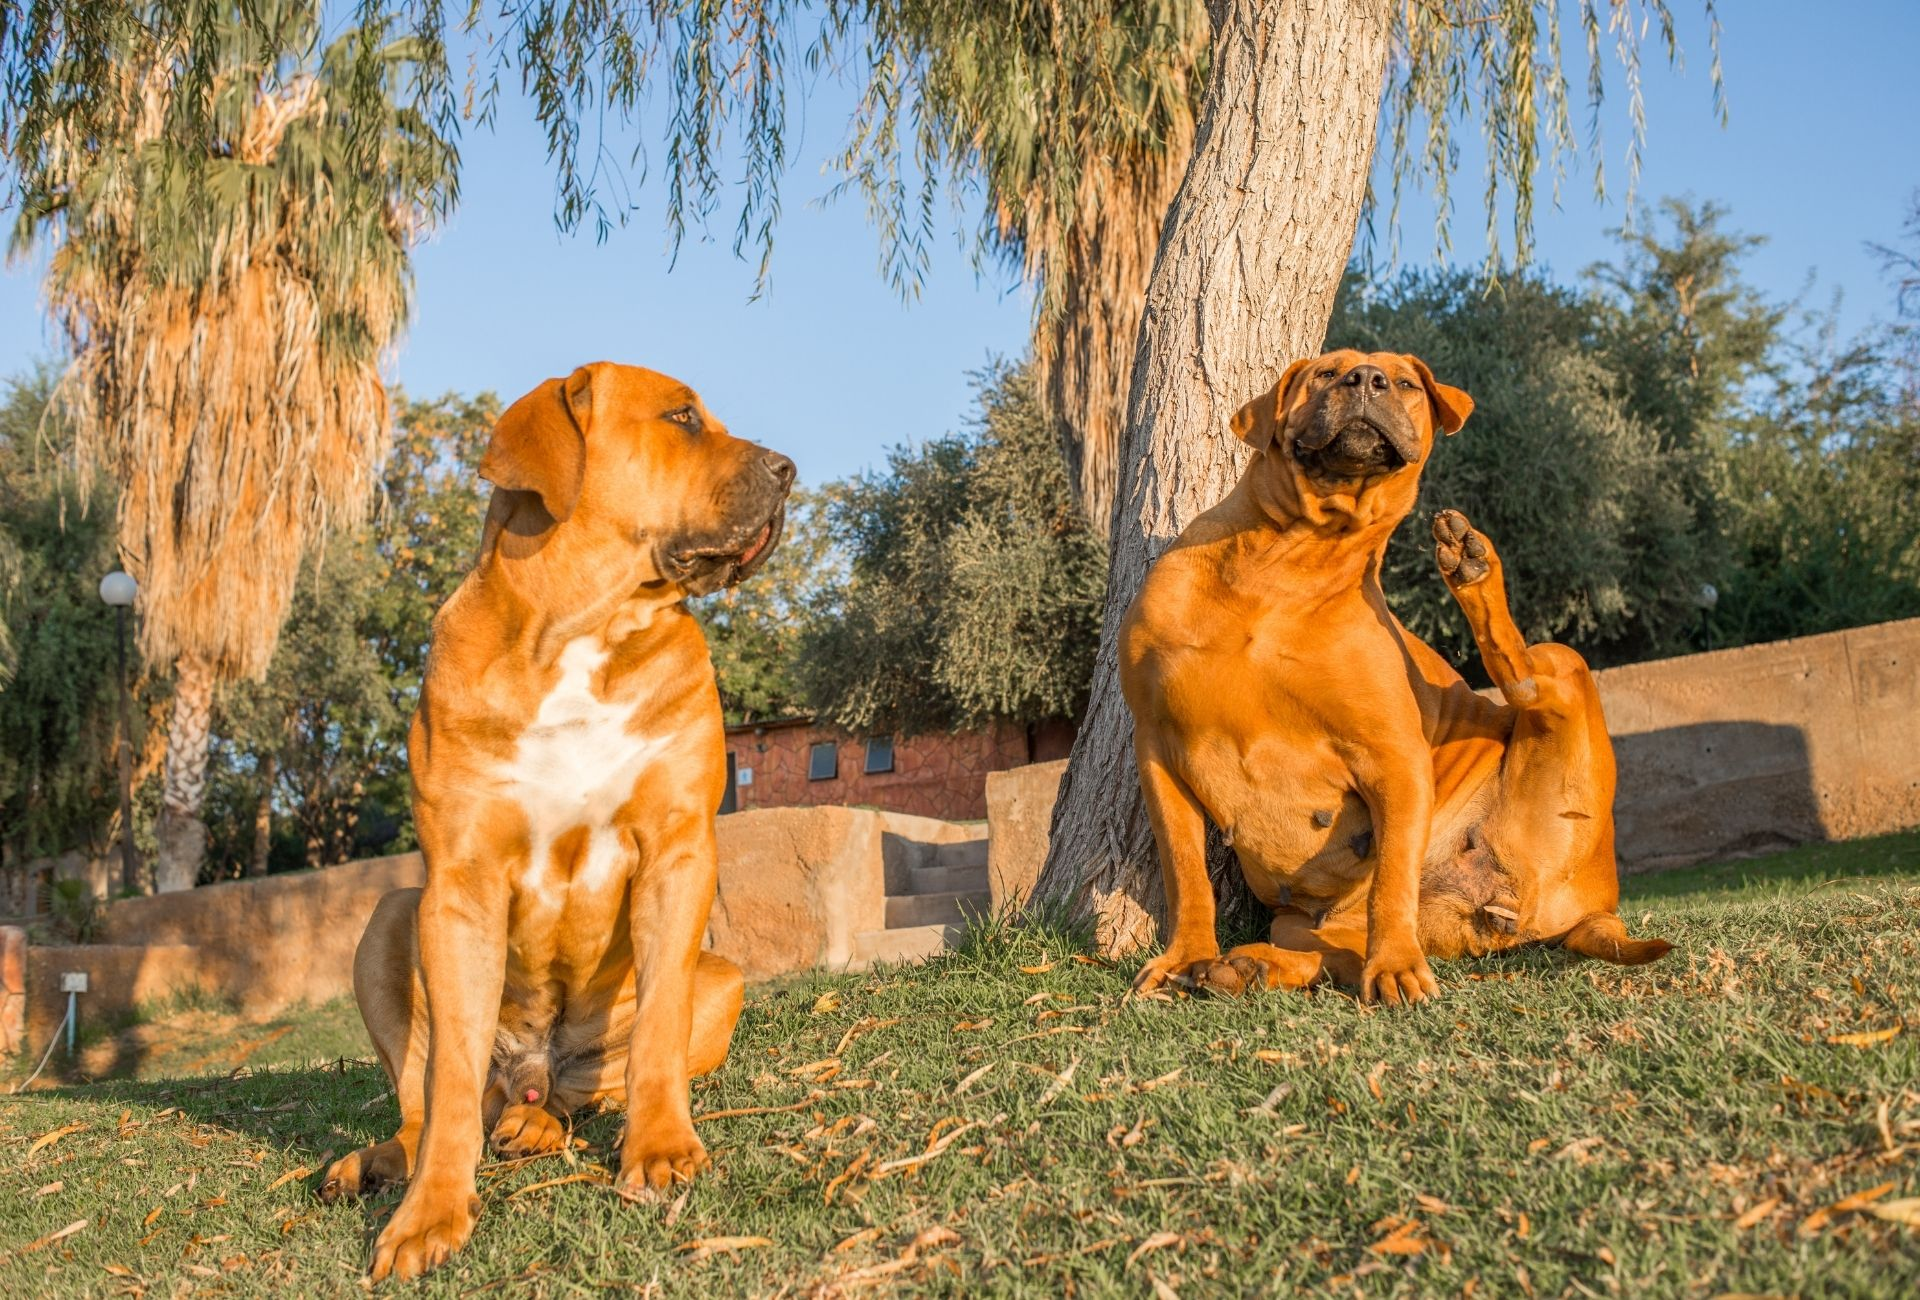 Two Boerboel dogs under a tree, the male is looking at the female scratching her head in a comical pose.